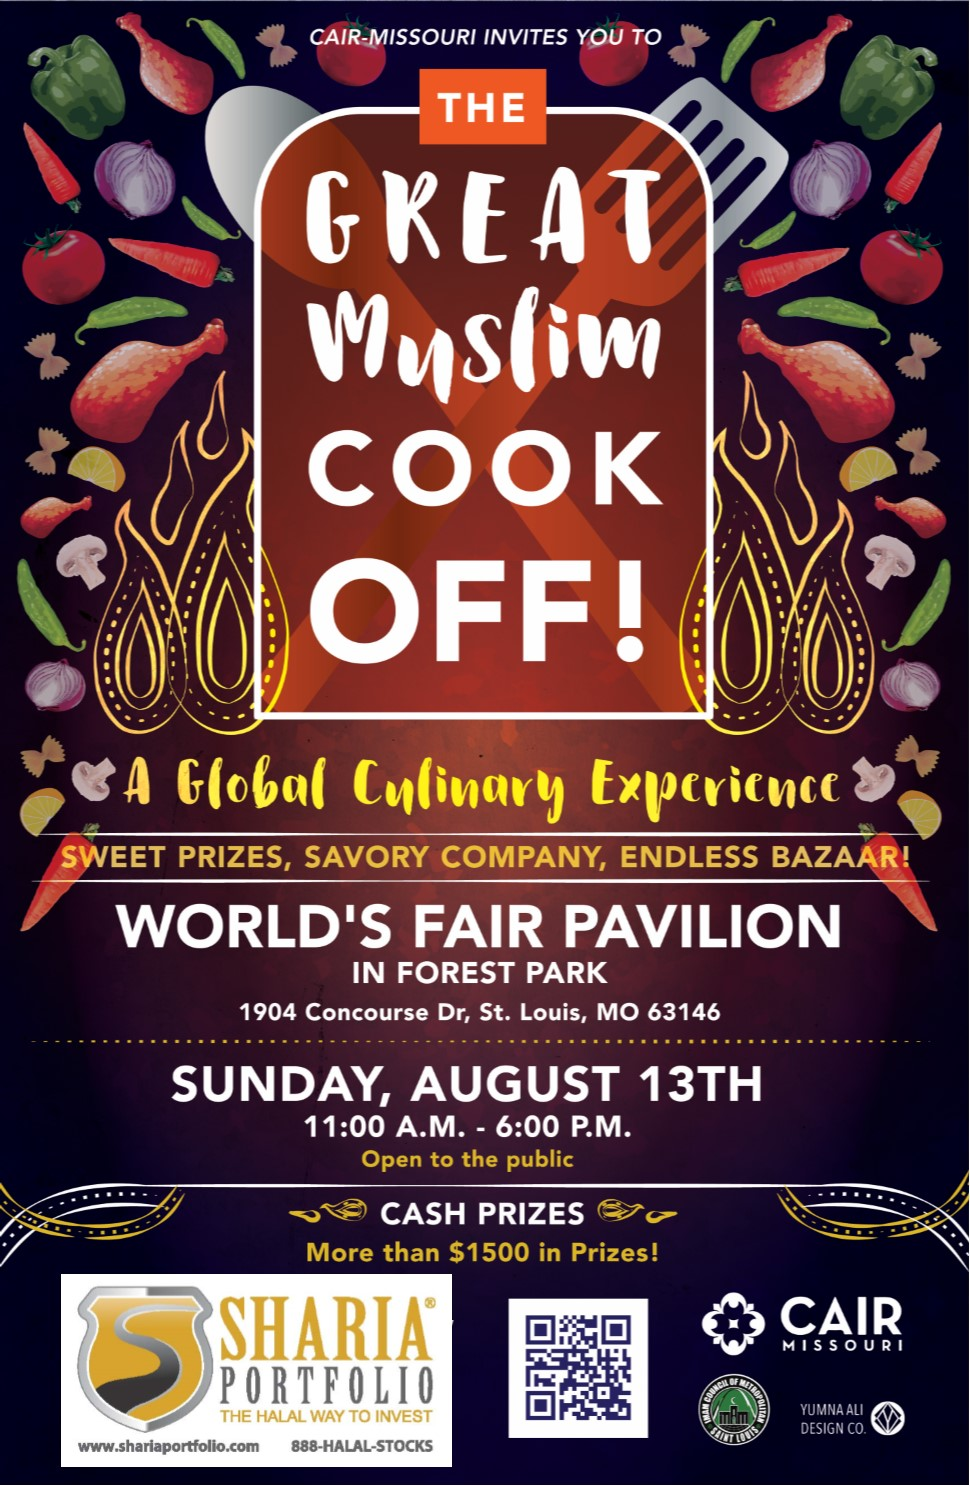 The Great Muslim Cook Off Food Festival Flyer